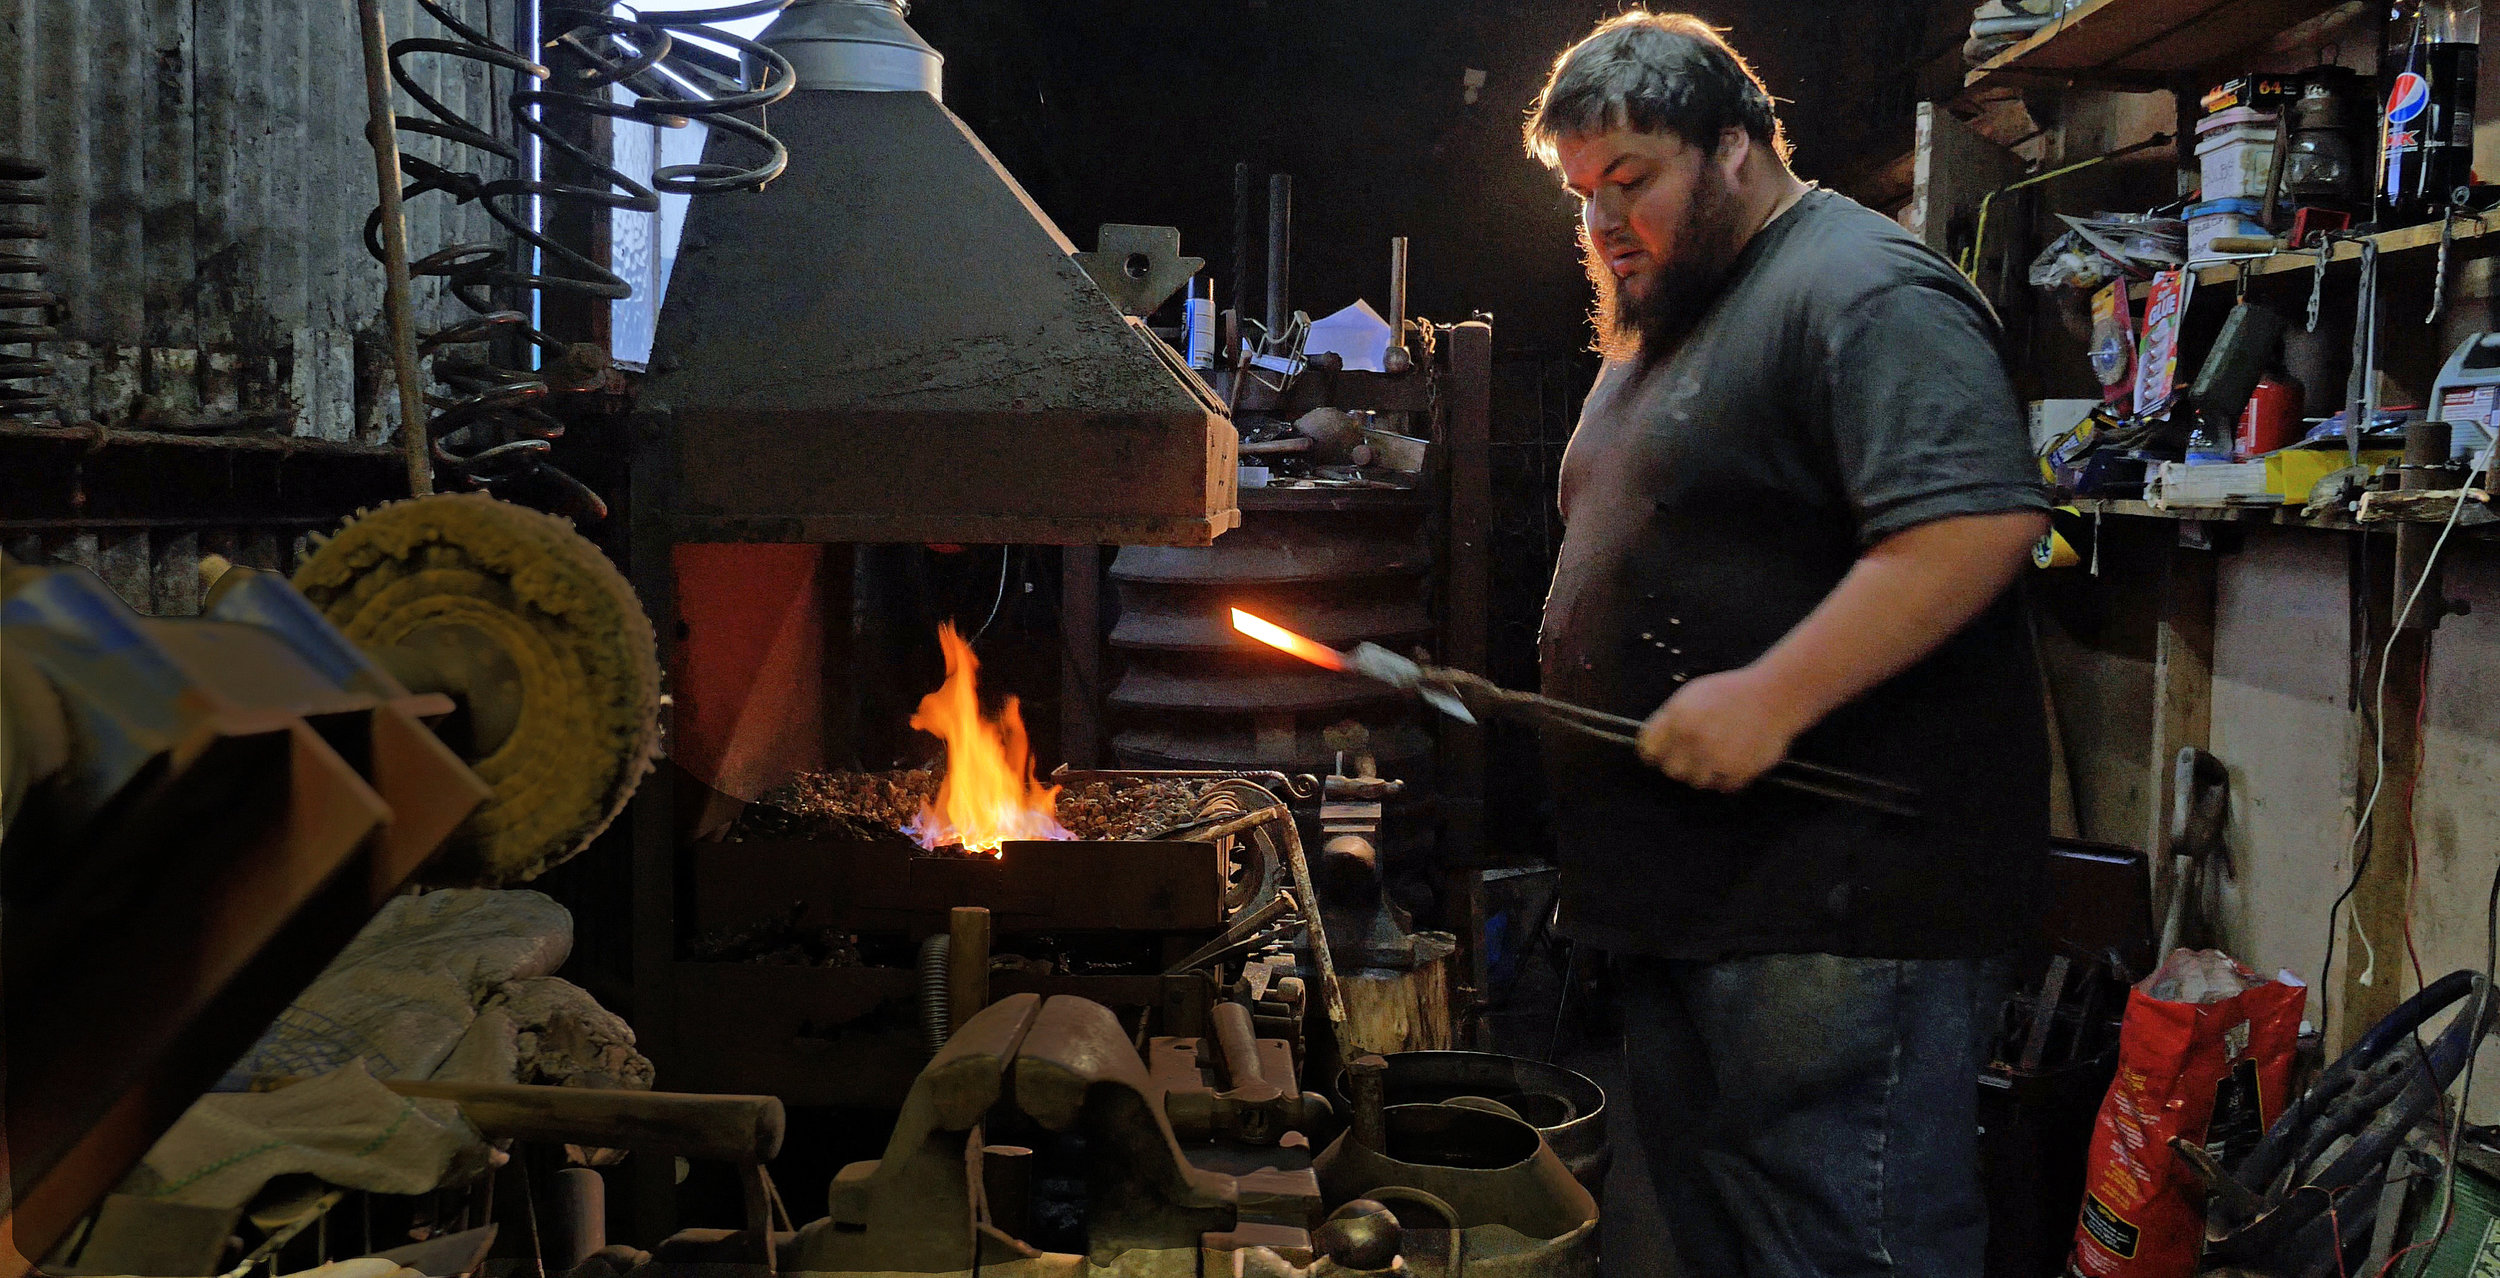 Filming Sam Smith at his forge in Glastonbury.